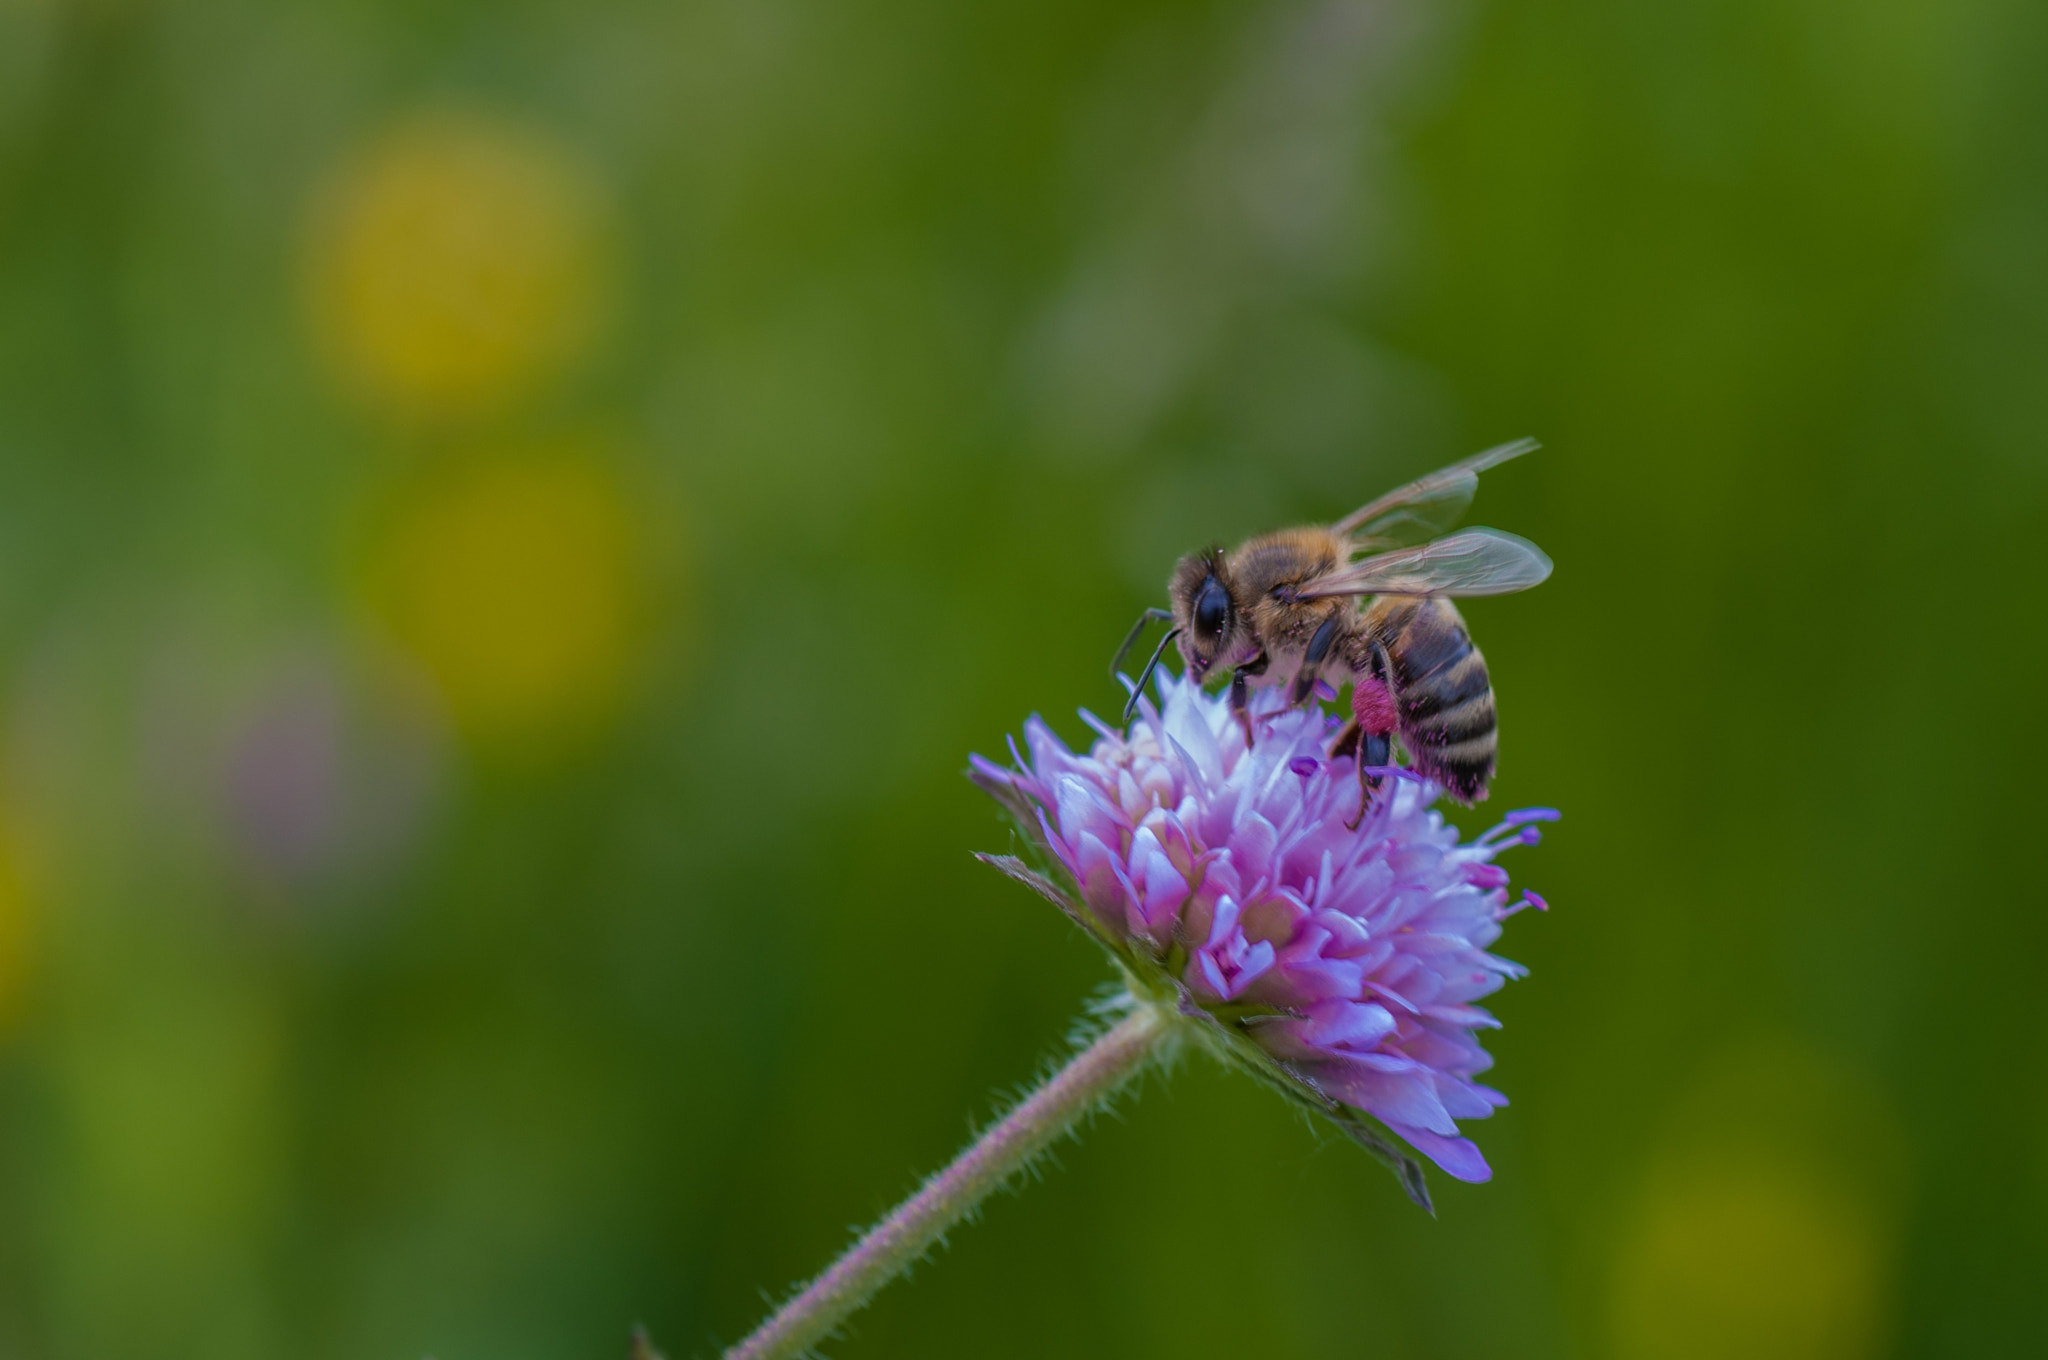 Photograph bee (05) by Vlado Ferencic on 500px